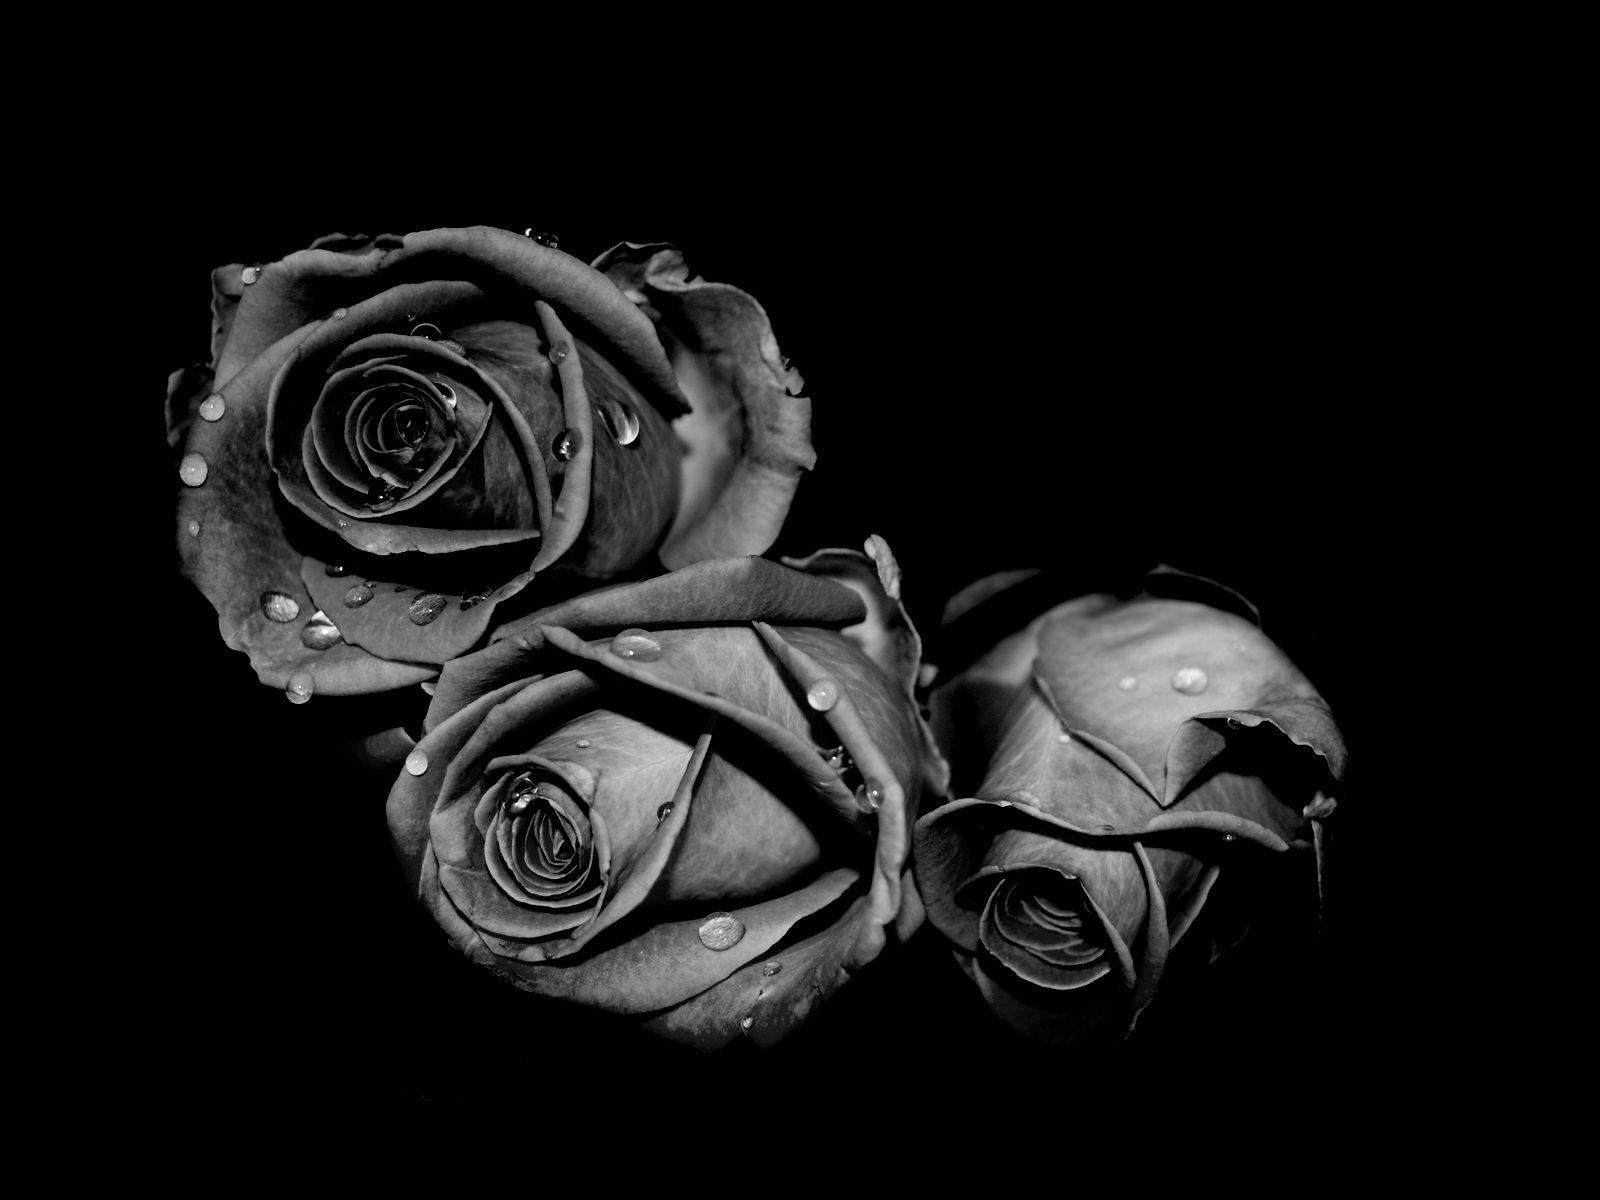 Black Rose Photo